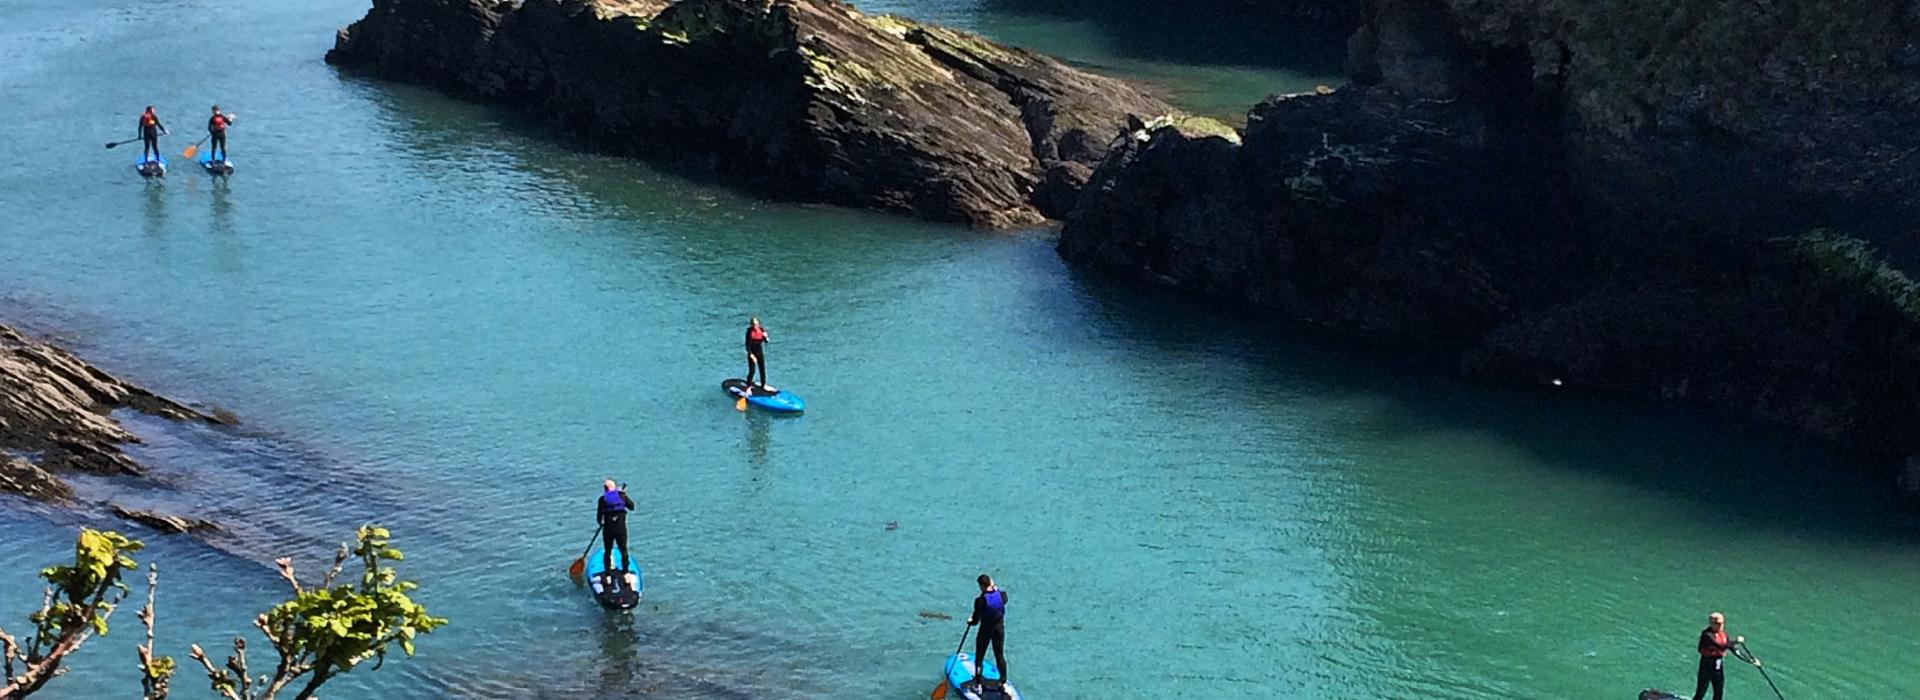 watersports devon, things to do near me, stag do ideas, hen do ideas, stag accommodation, hen accommodation